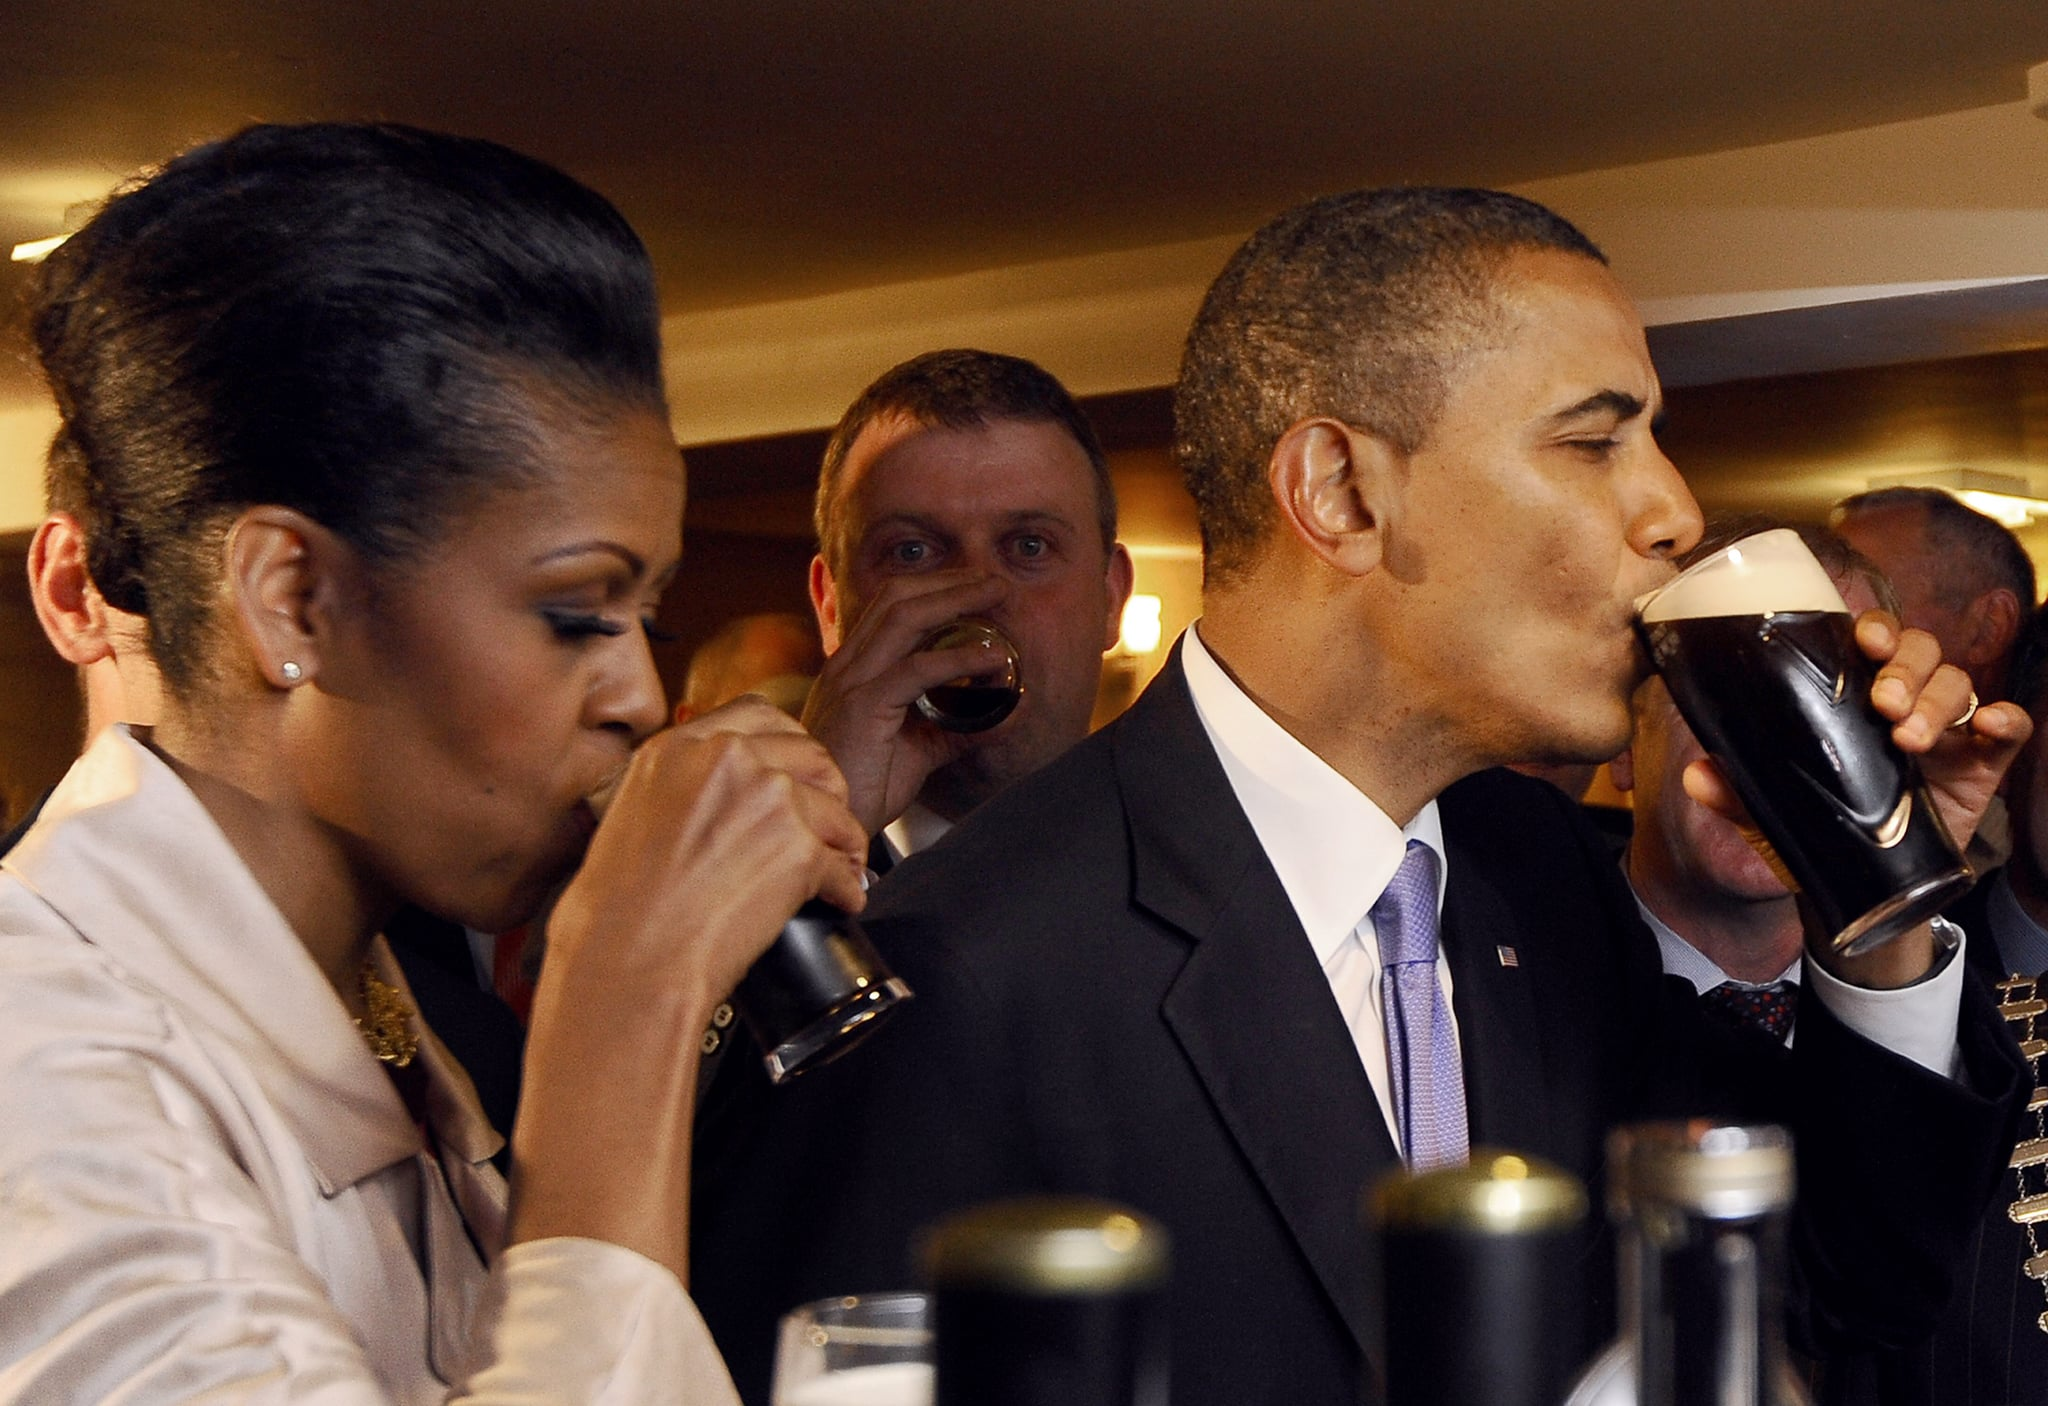 During a 2013 visit to Moneygall, the village in rural County Offaly, Ireland, where Barack's great-great-great grandfather Falmouth Kearney came from, the Obamas drank Guinness.